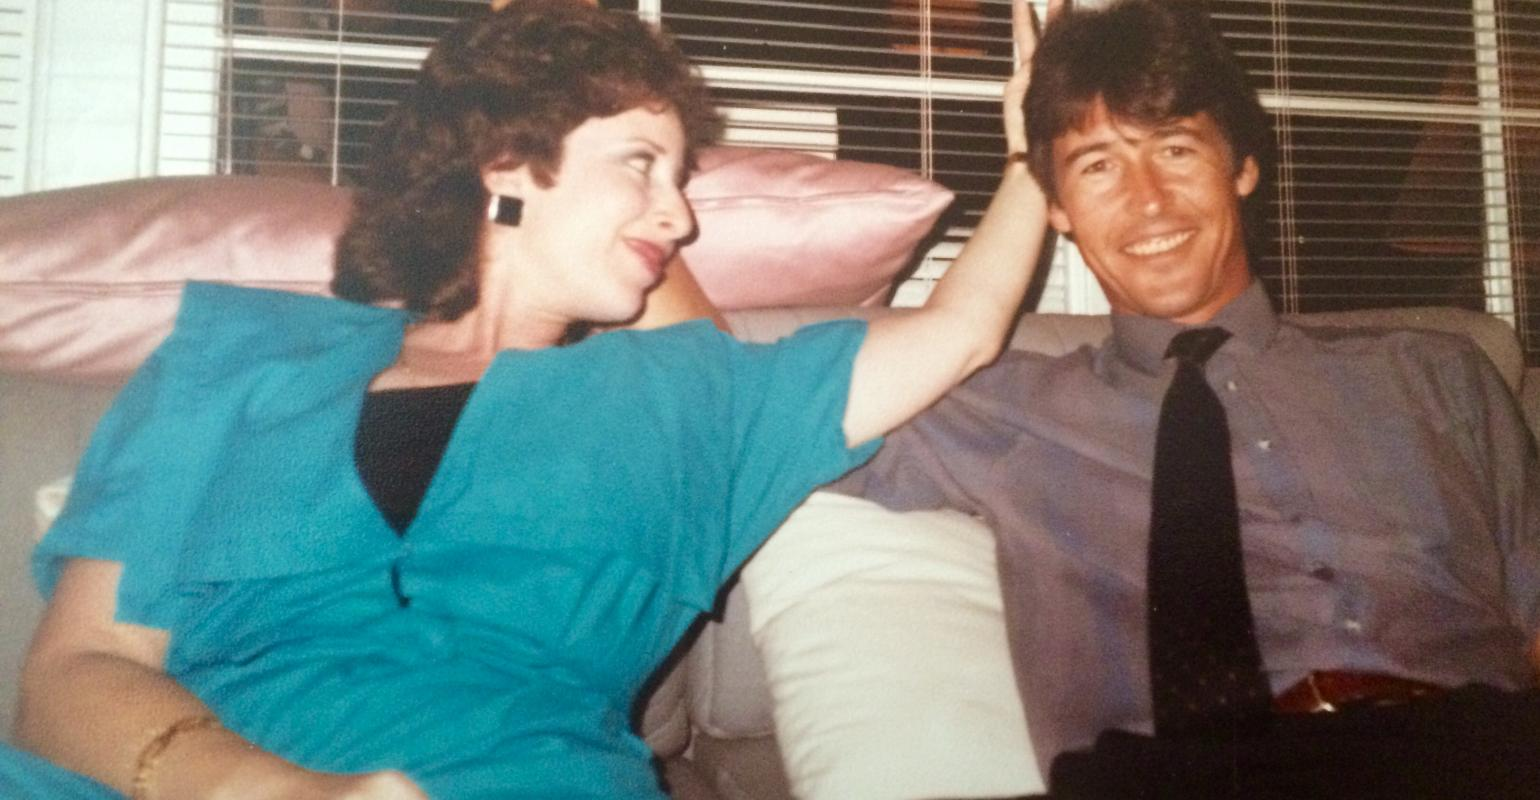 Randy and me at a party in the late 80's. I love this picture. Still friends after all this time.